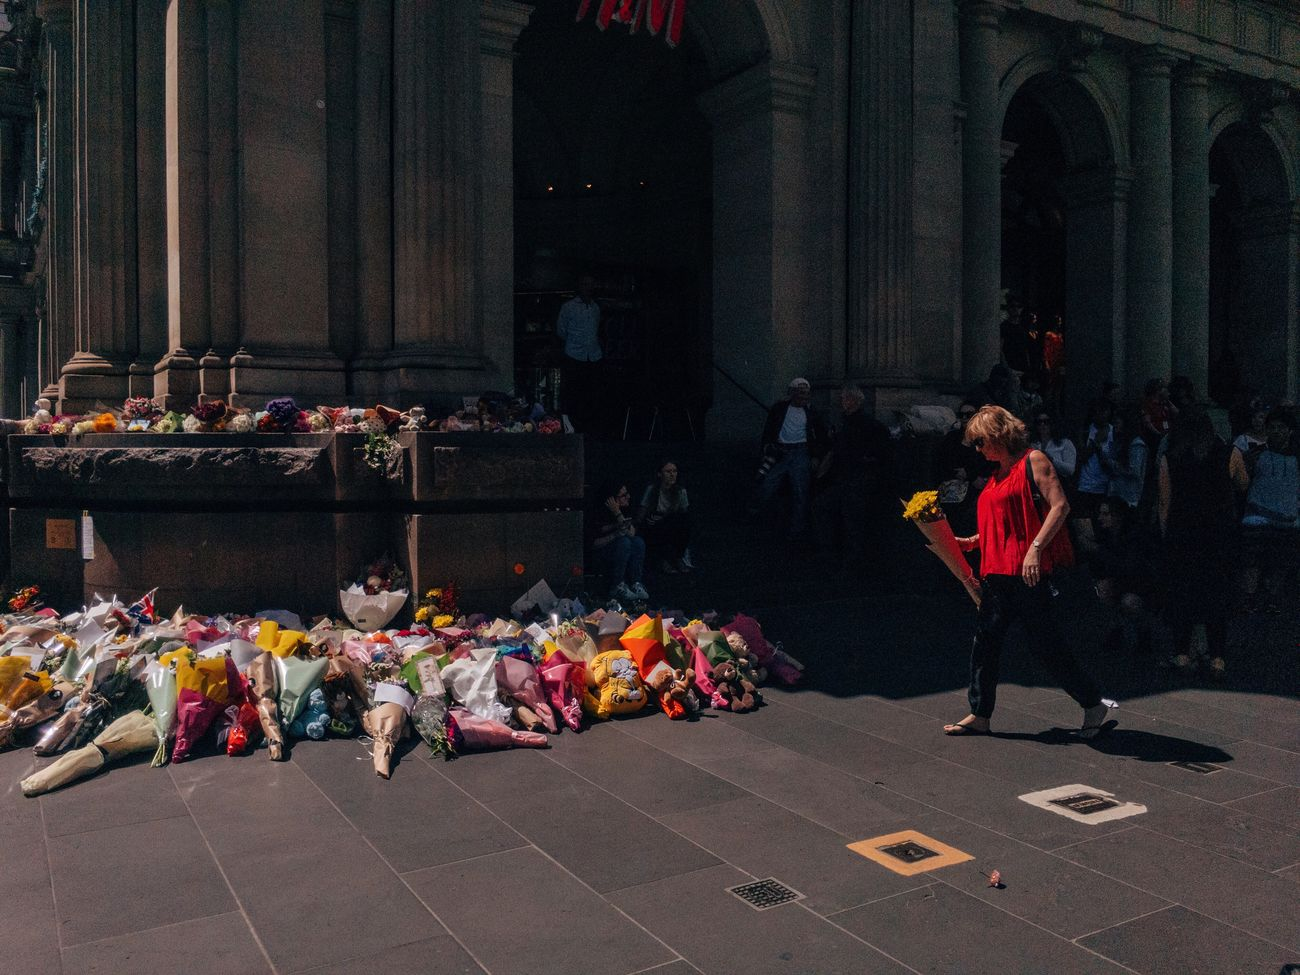 Today, the people of Melbourne gathered at the Bourke Street mall to grieve. Streetphotography Streetphoto_color Streets Of Melbourne Procamera Adobelightroommobile Mobilephotography ShotoniPhone6s IPhoneography MelbournePhotographer People Watching VSCO Reportage Bourke St - Melbourne